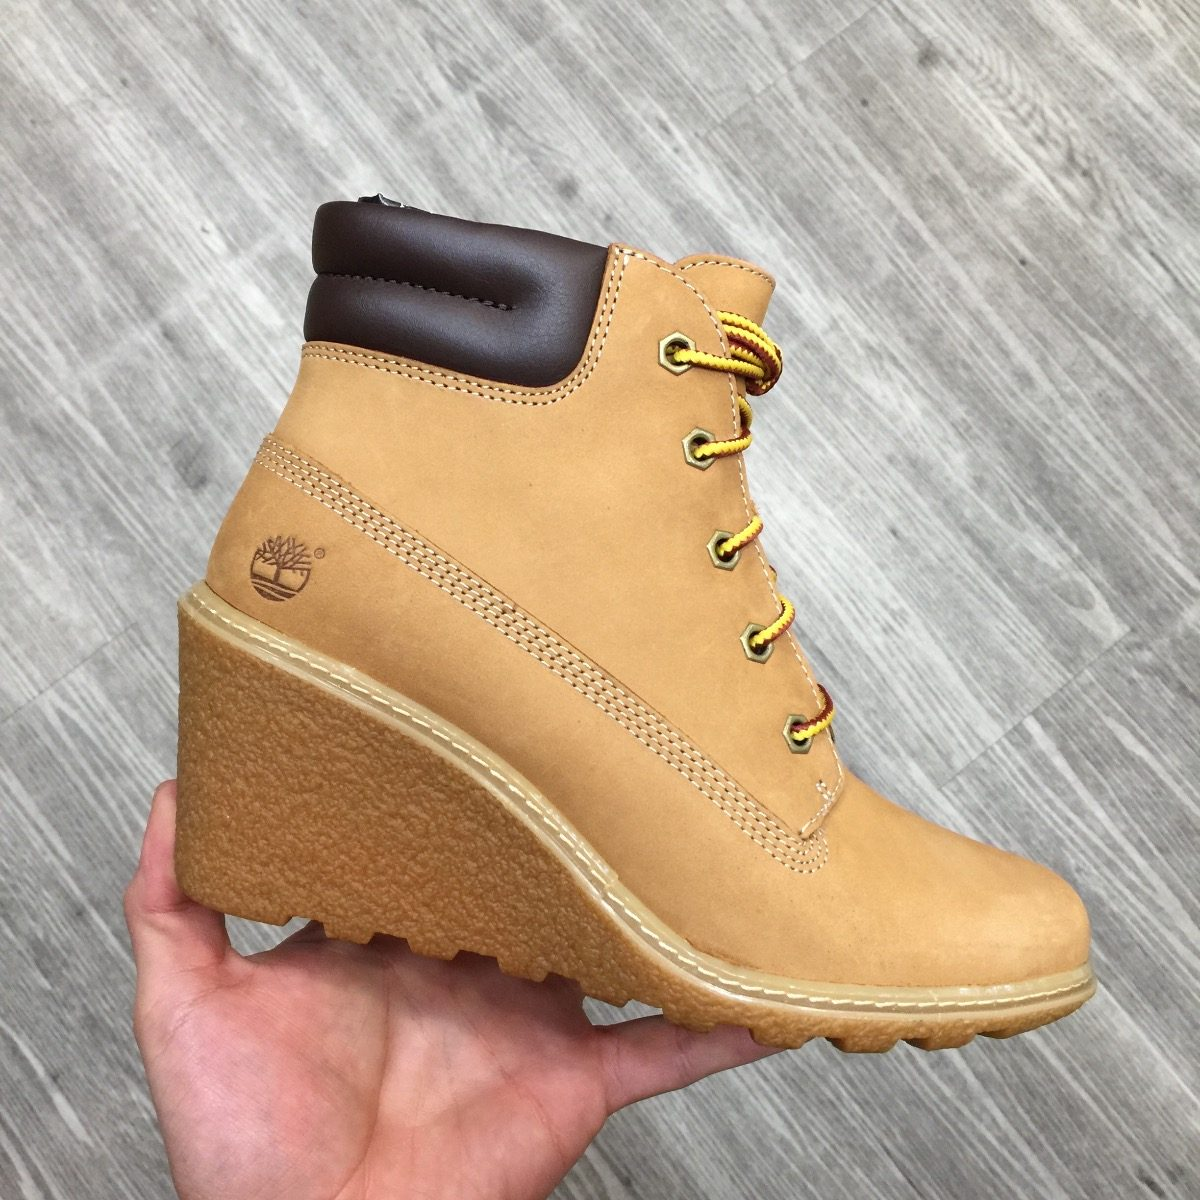 Botas Timberland Mujer Amston Ocre 8251a Look Trendy